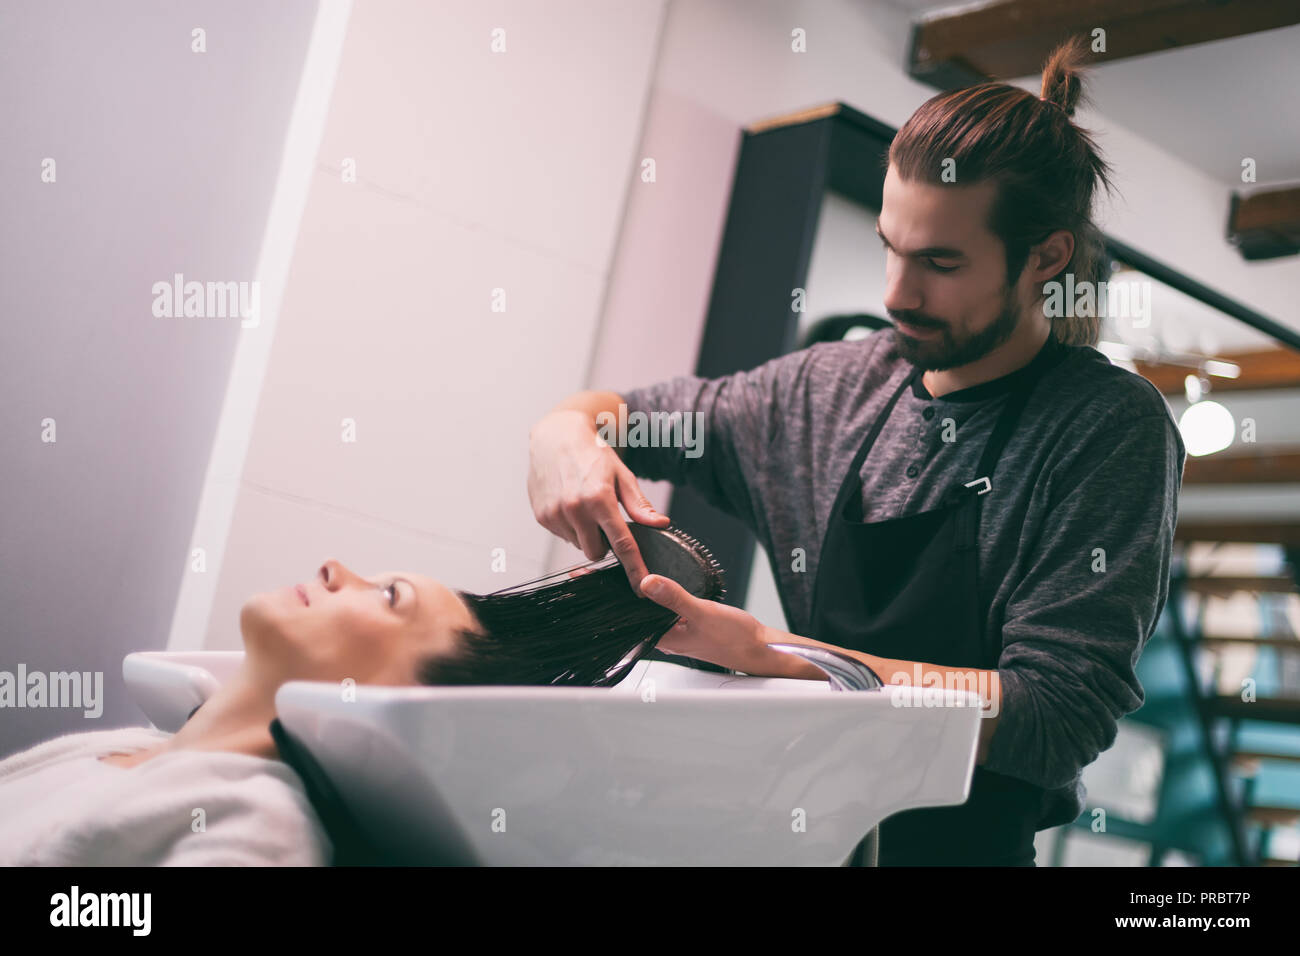 Young woman getting new hairstyle at professional hair styling saloon. - Stock Image